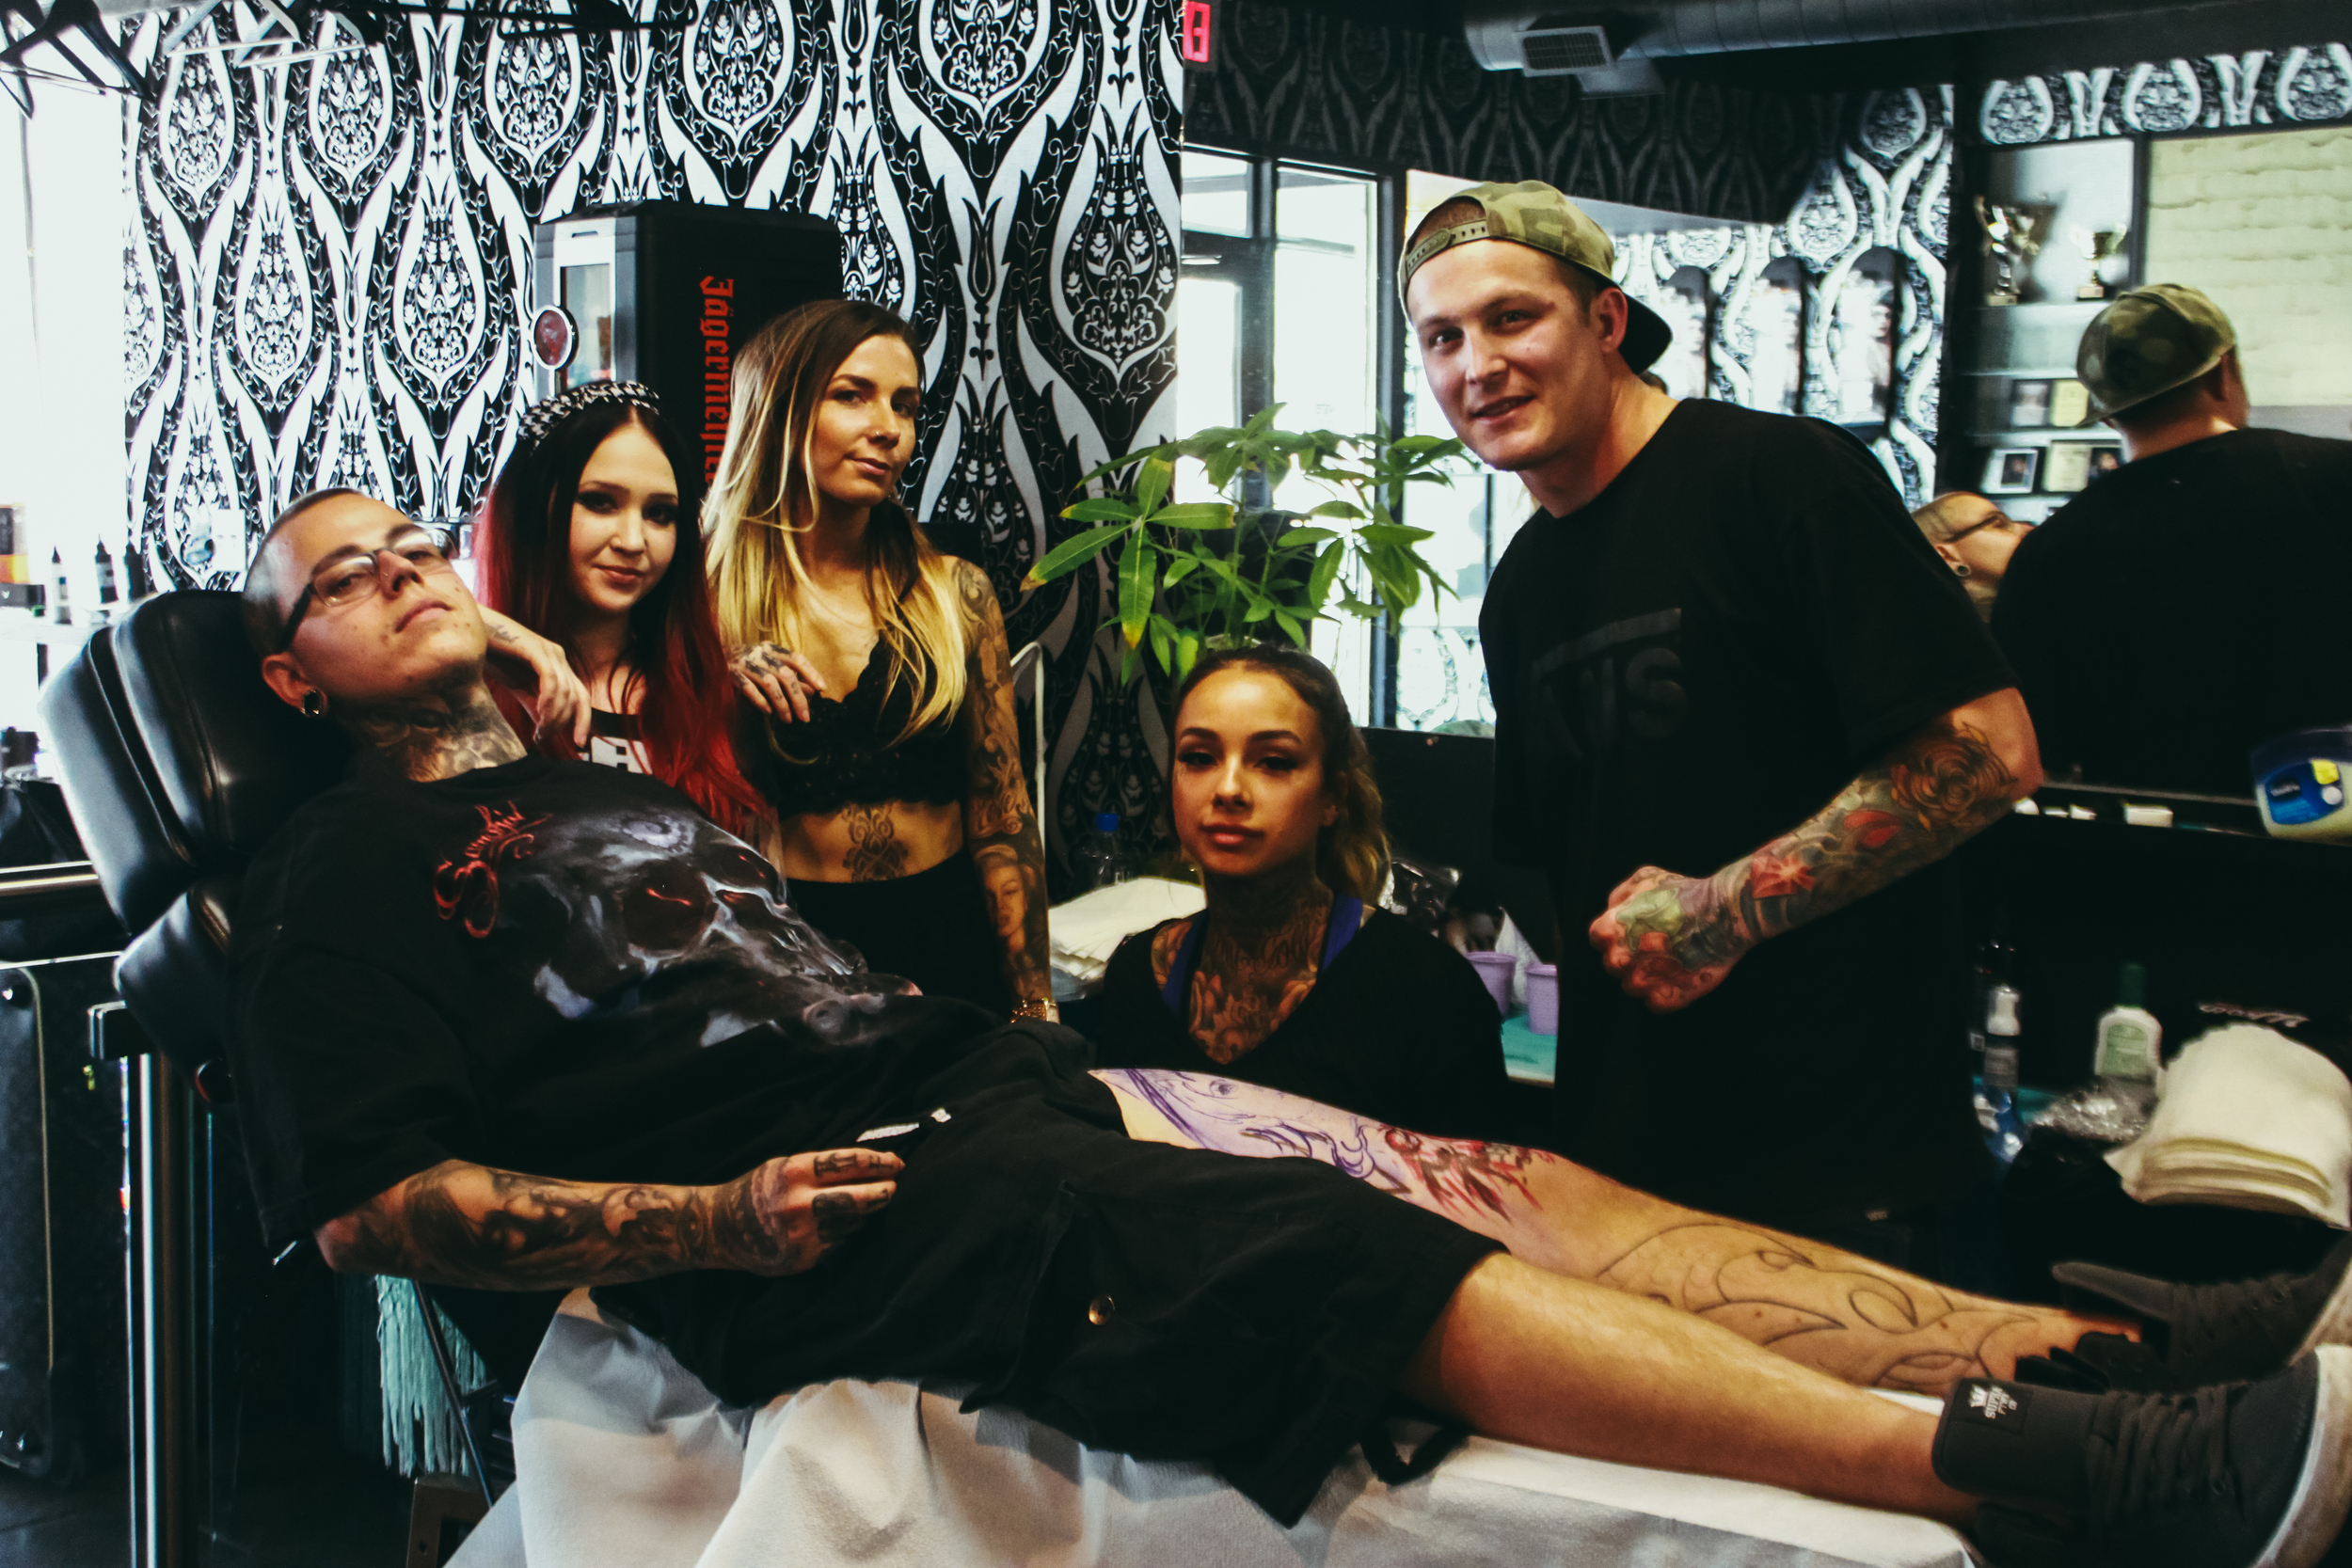 FYINK_tattoos-shoplife-june-14.jpg